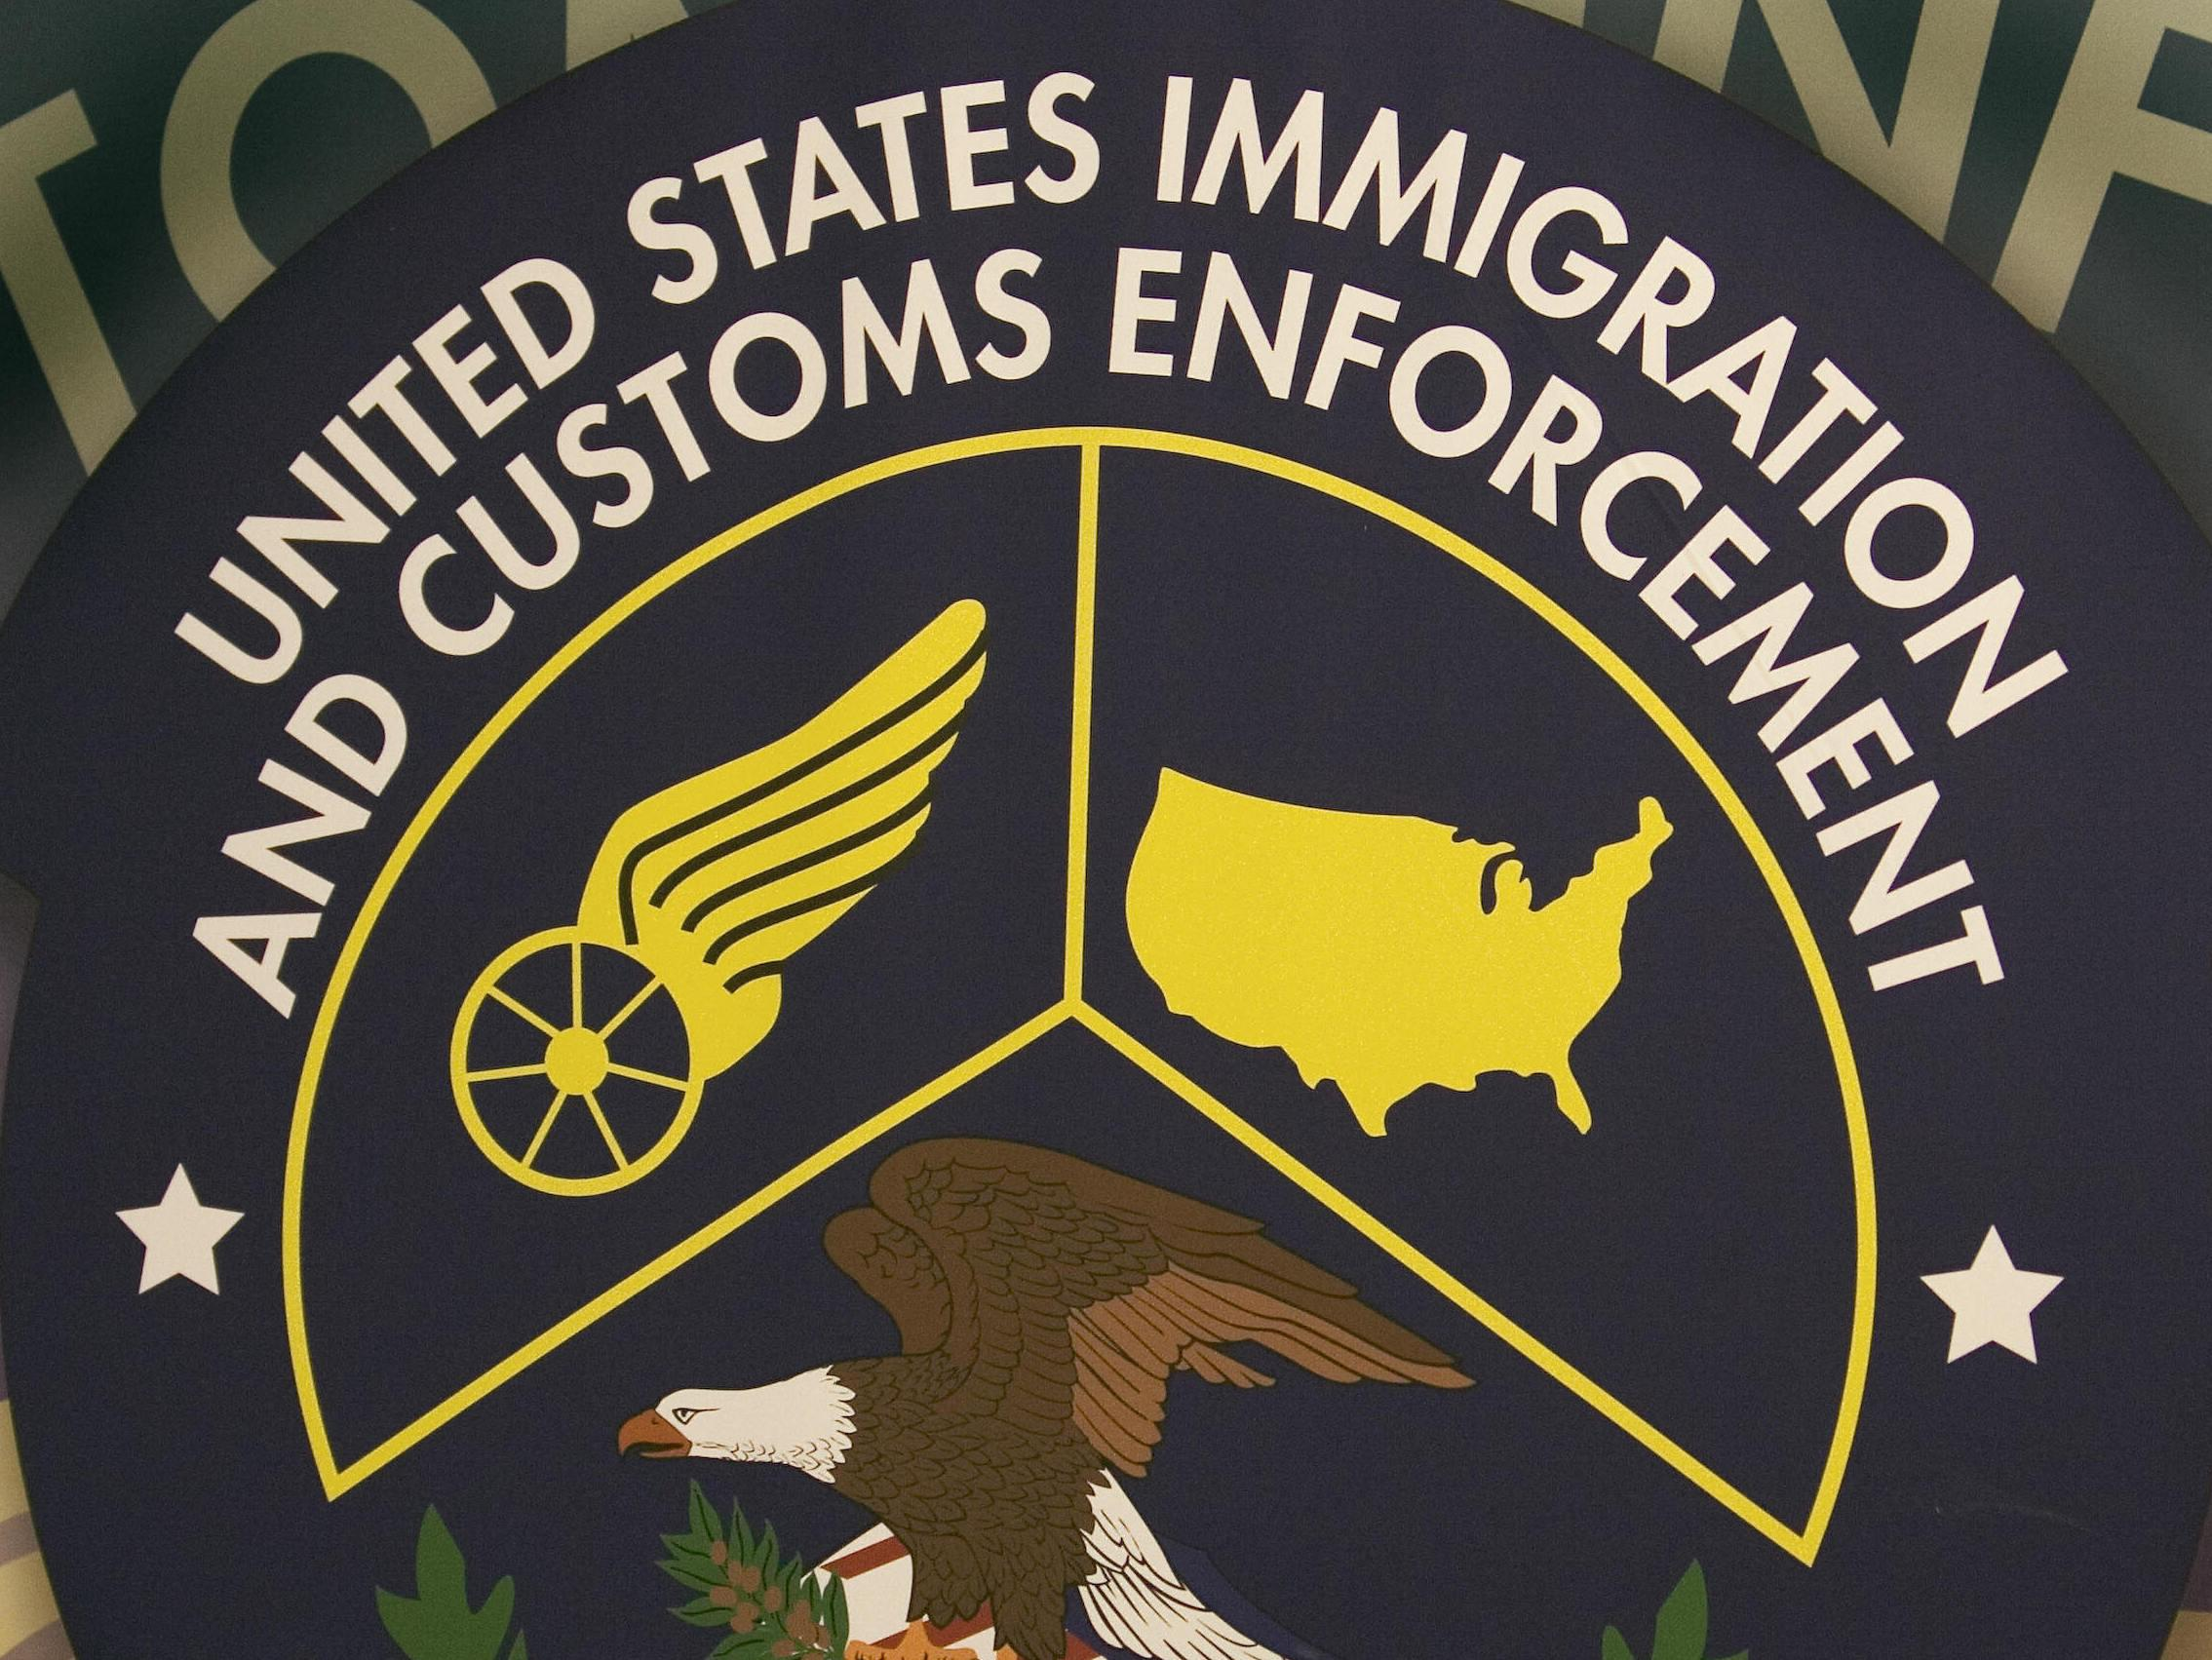 new immigration policy Raul a reyes says the trump administration's new restrictions on asylum are legally questionable, inhumane and wrong.